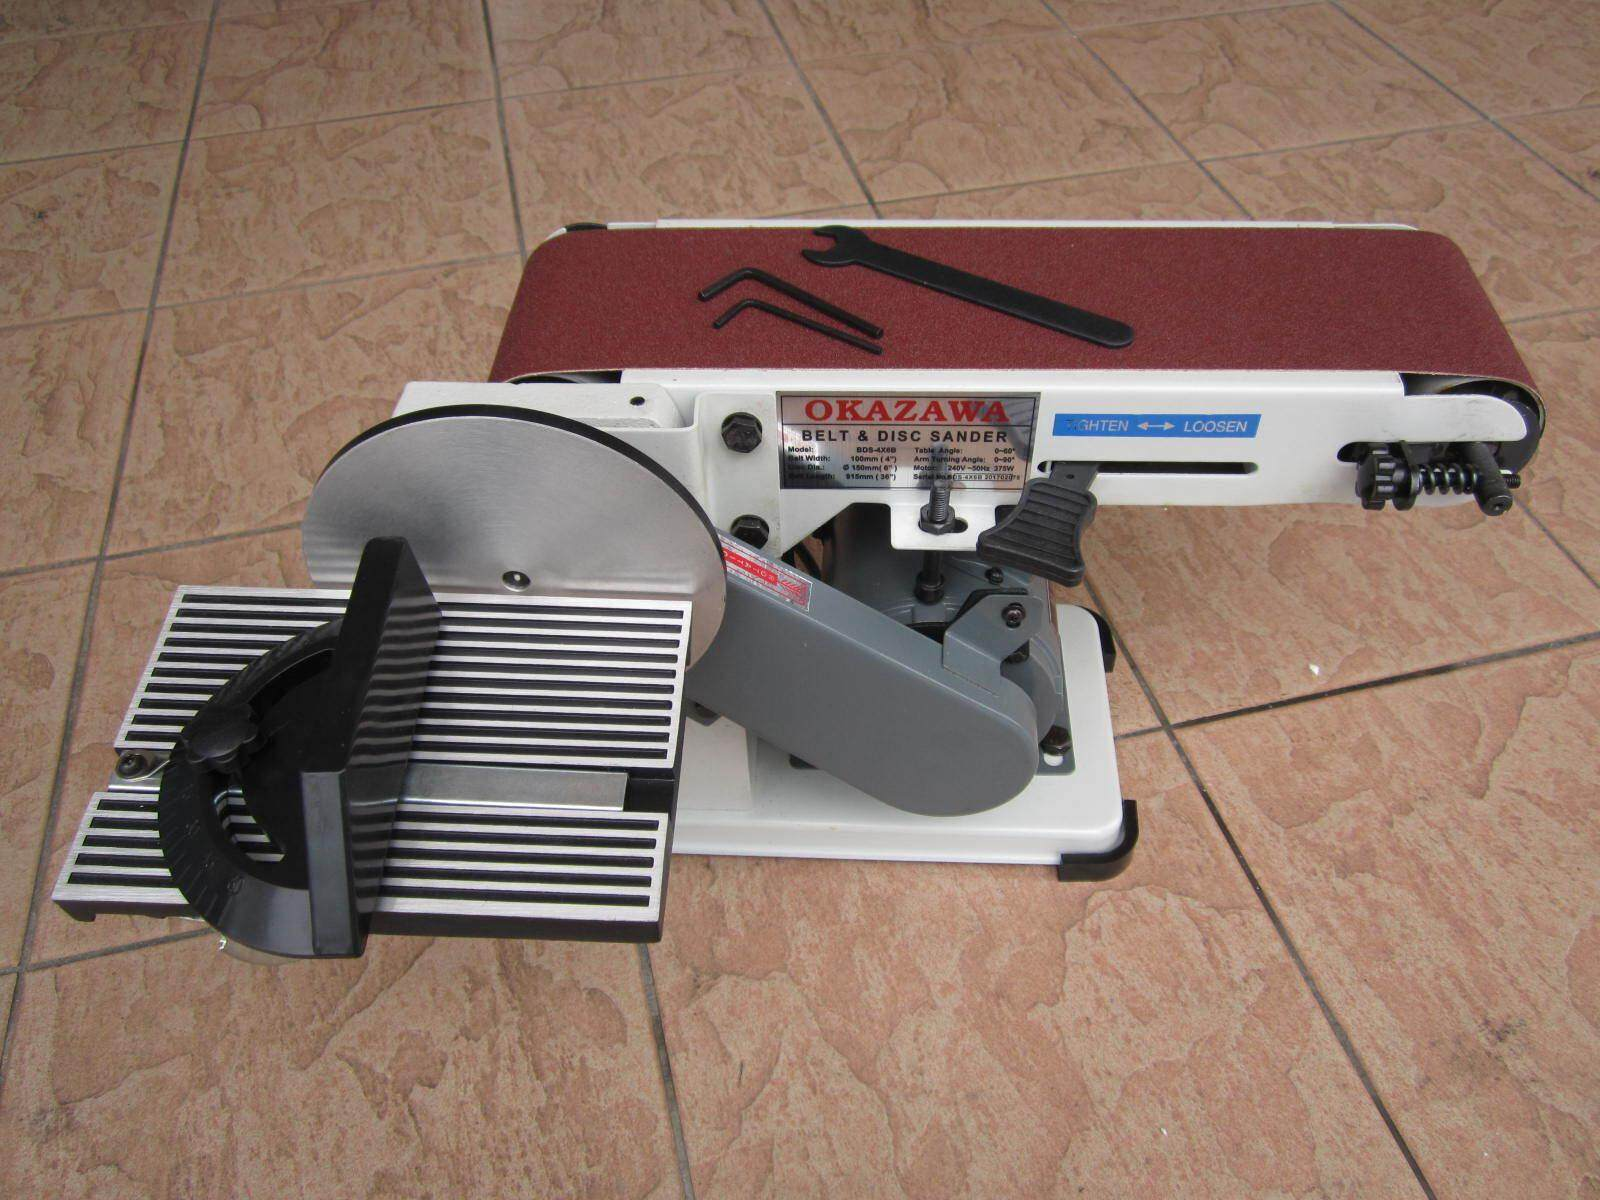 Okazawa 4 x 36 Belt and 6 Disc Sander Machine with Steel Base, Belt and Disc Sander